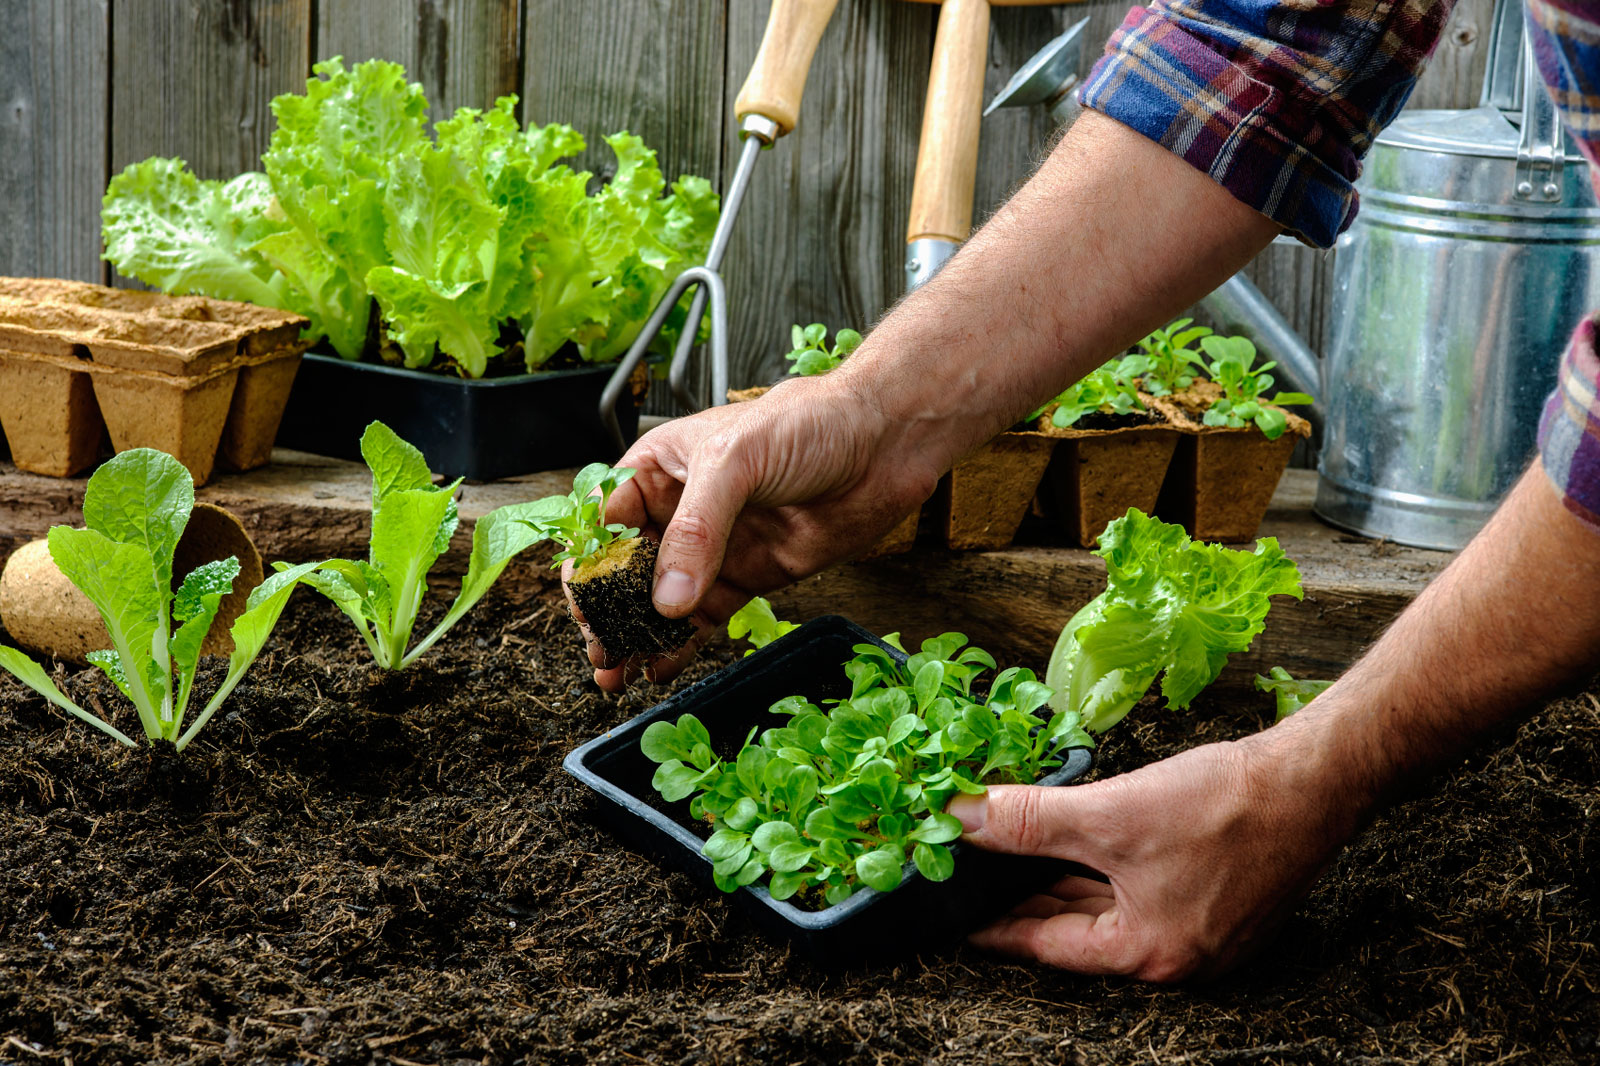 Soil, Composting, and Fertilizers